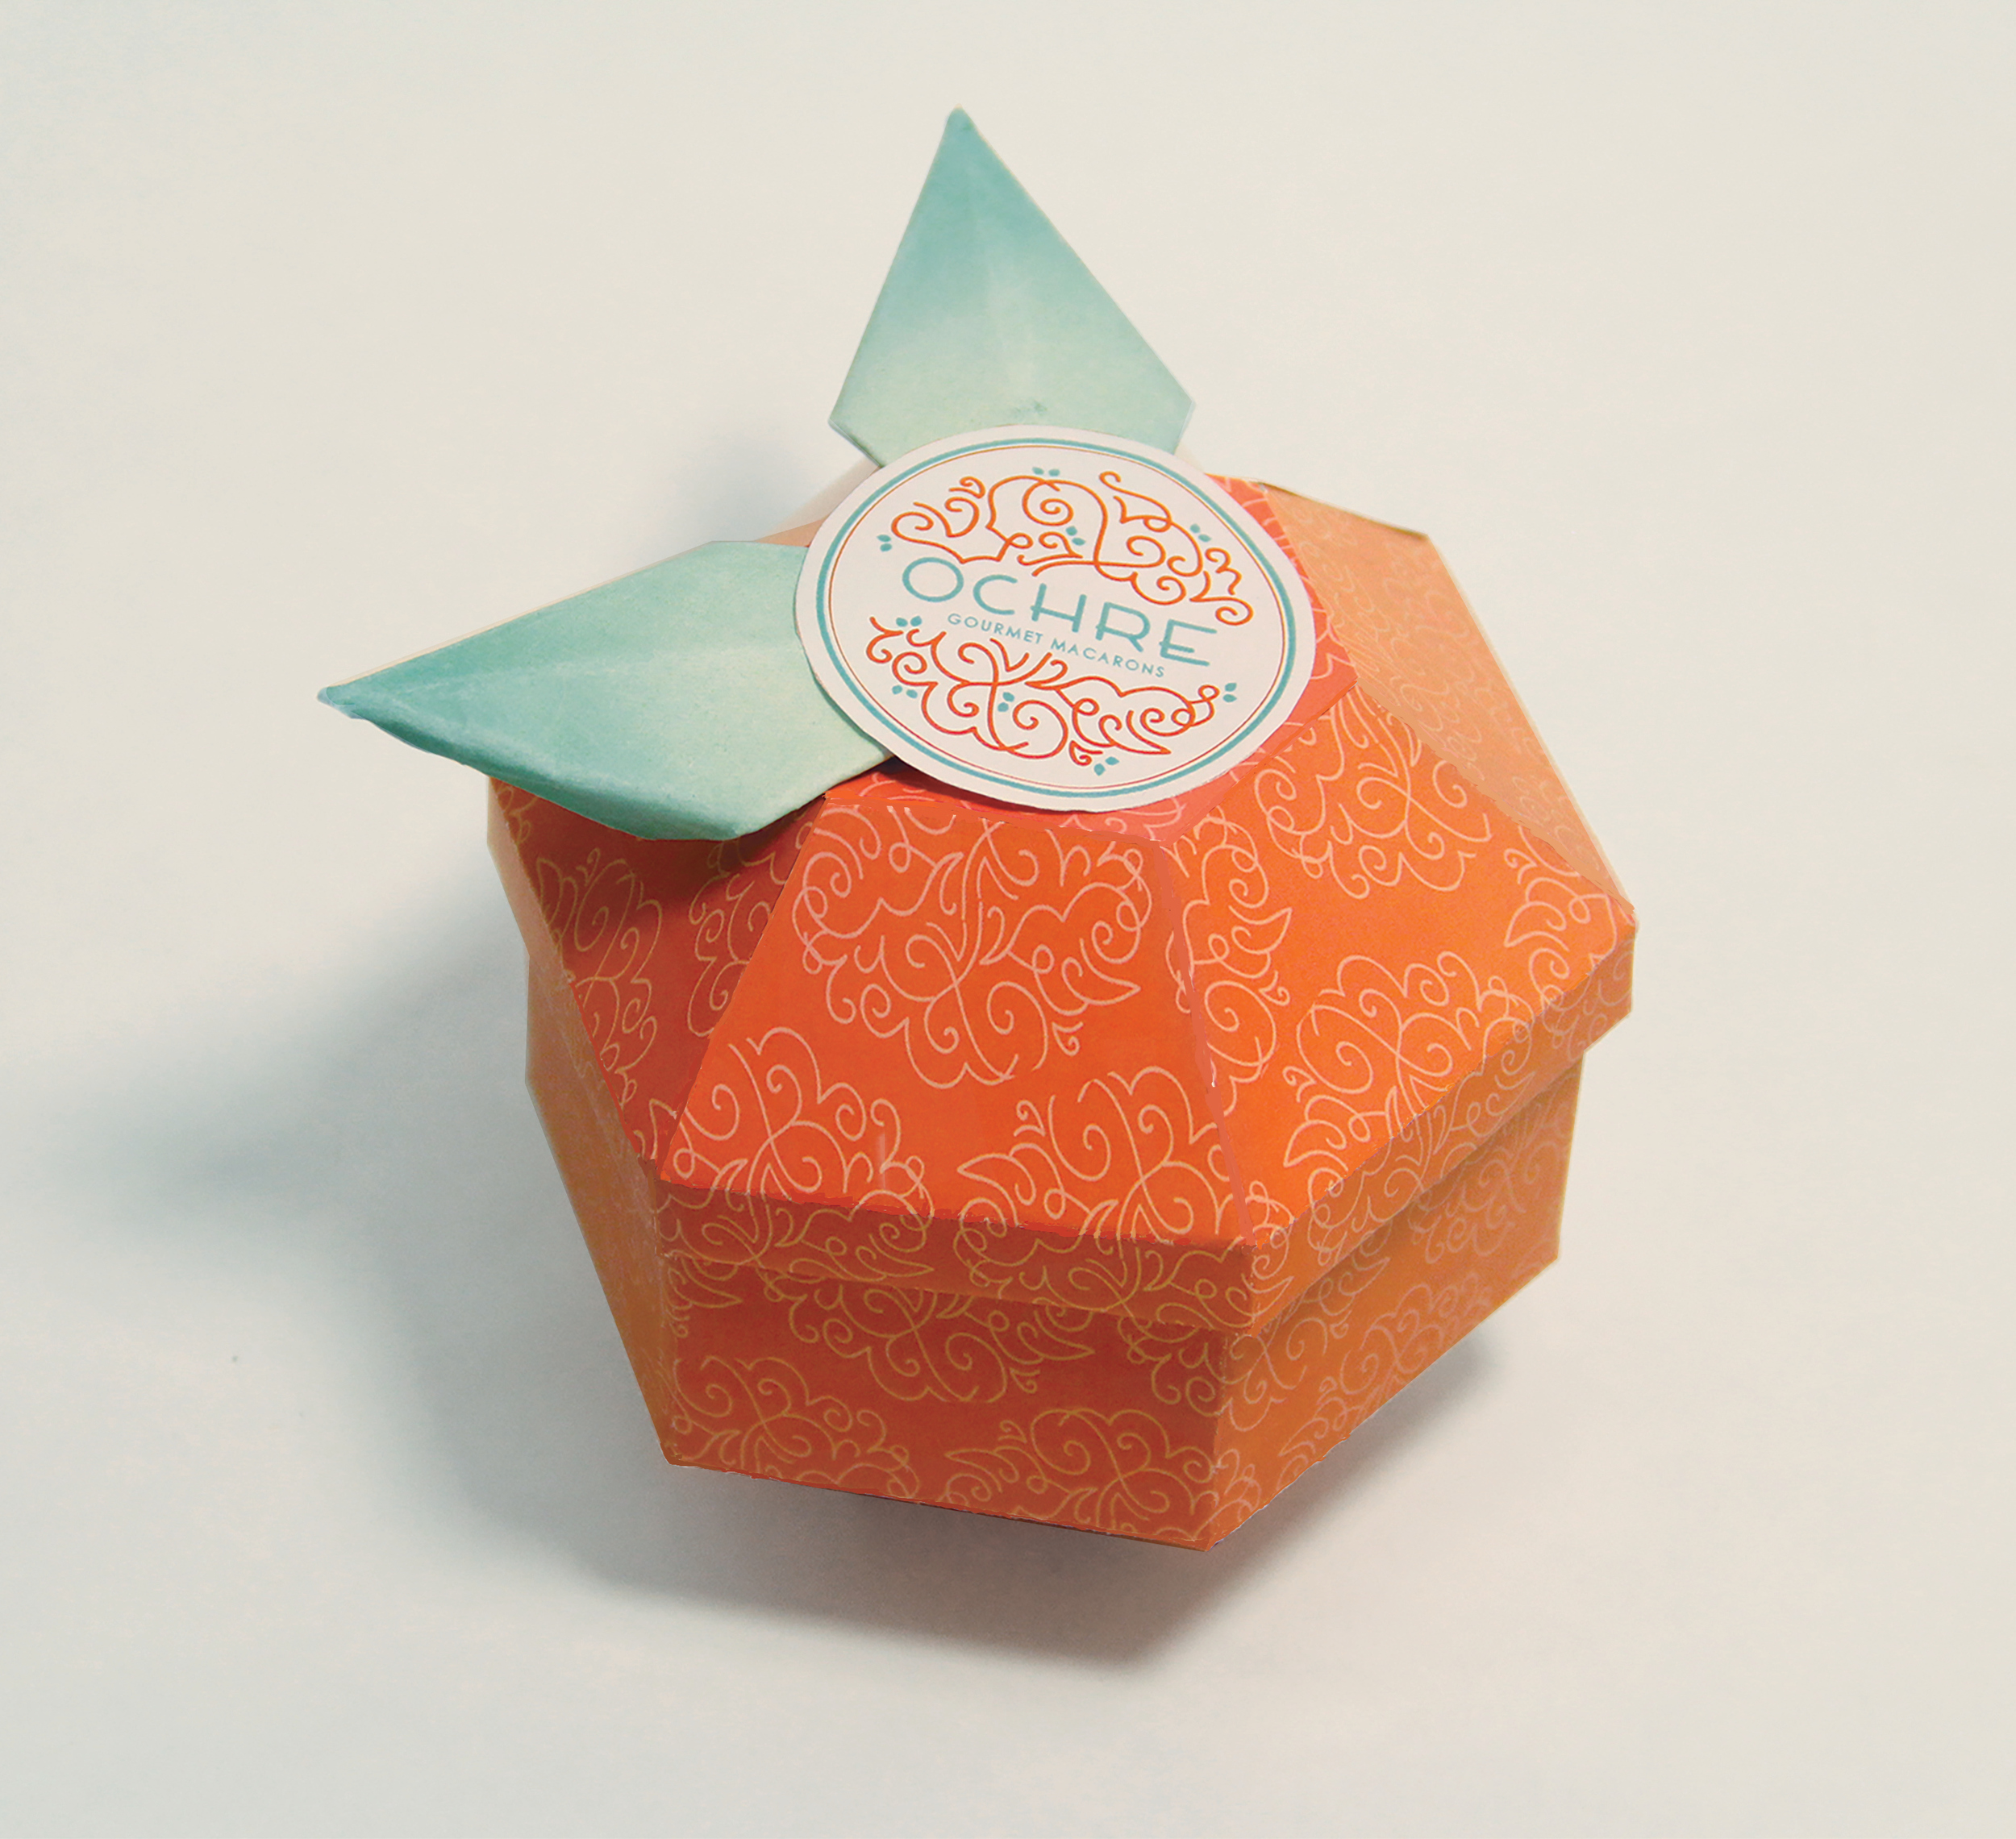 Exterior of packaging for Ochre Macarons